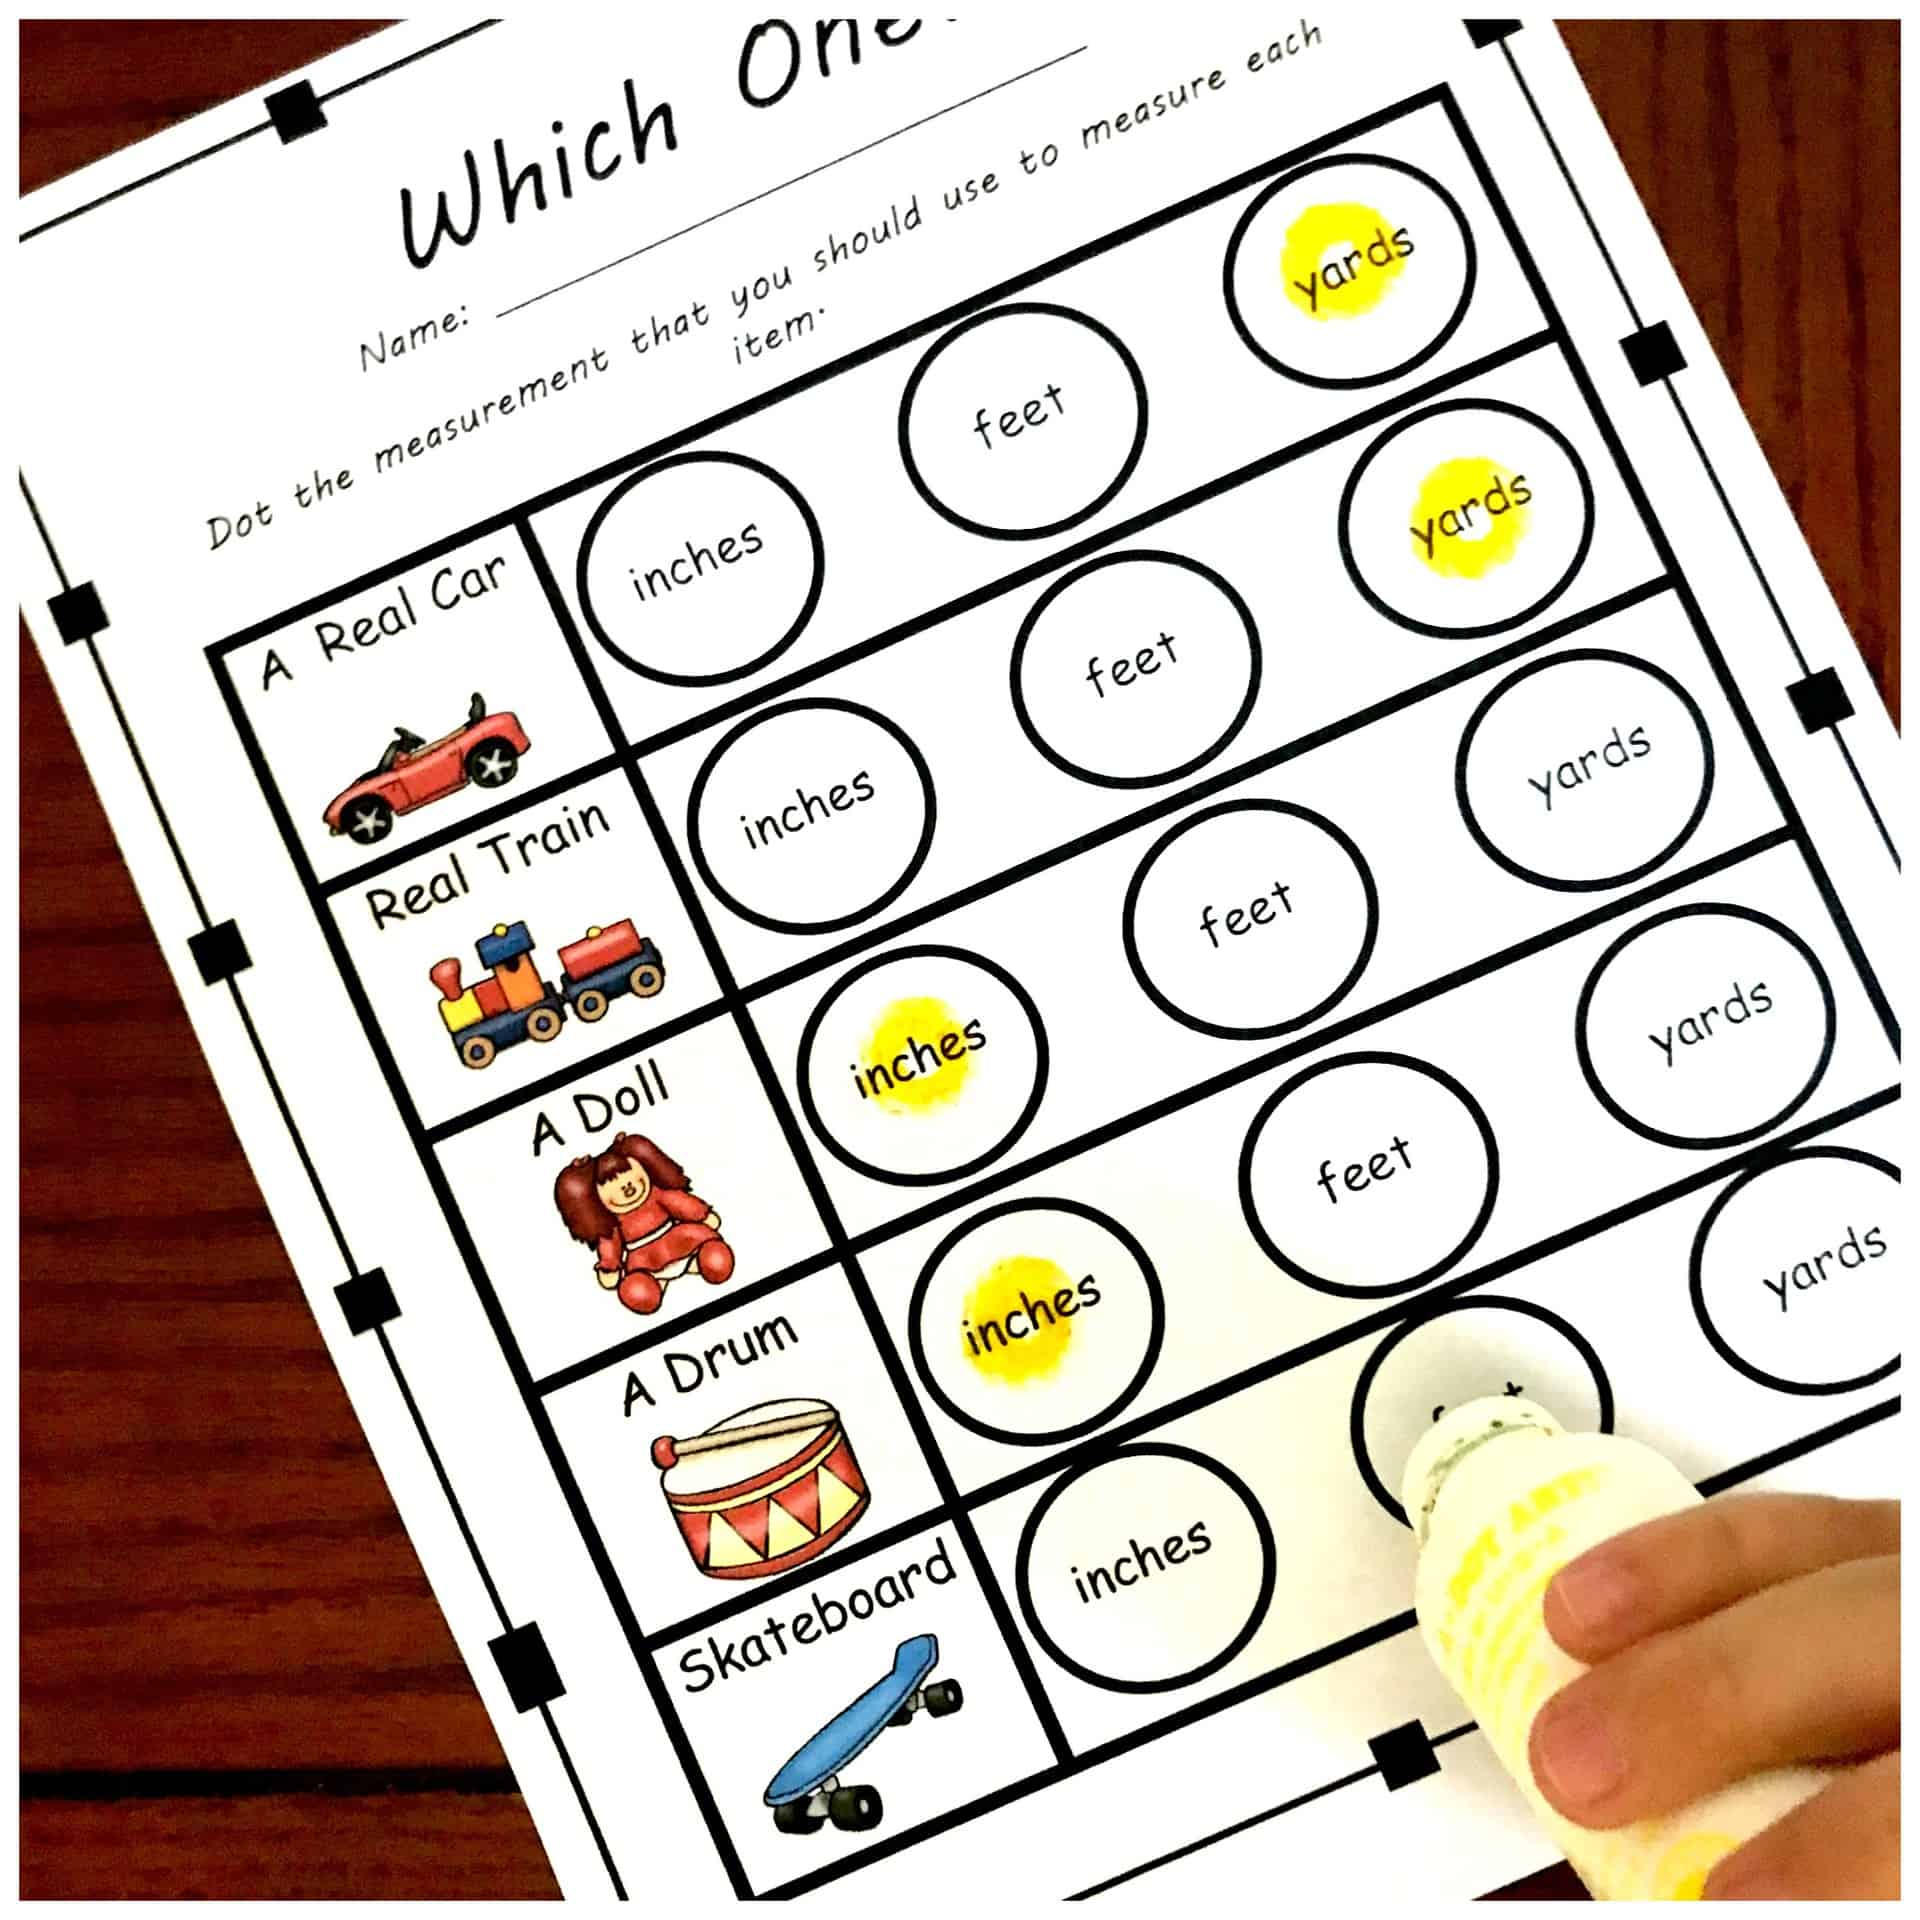 Four Measurement Tools Worksheets To Practice Choosing Appropriate Tools For Measuring